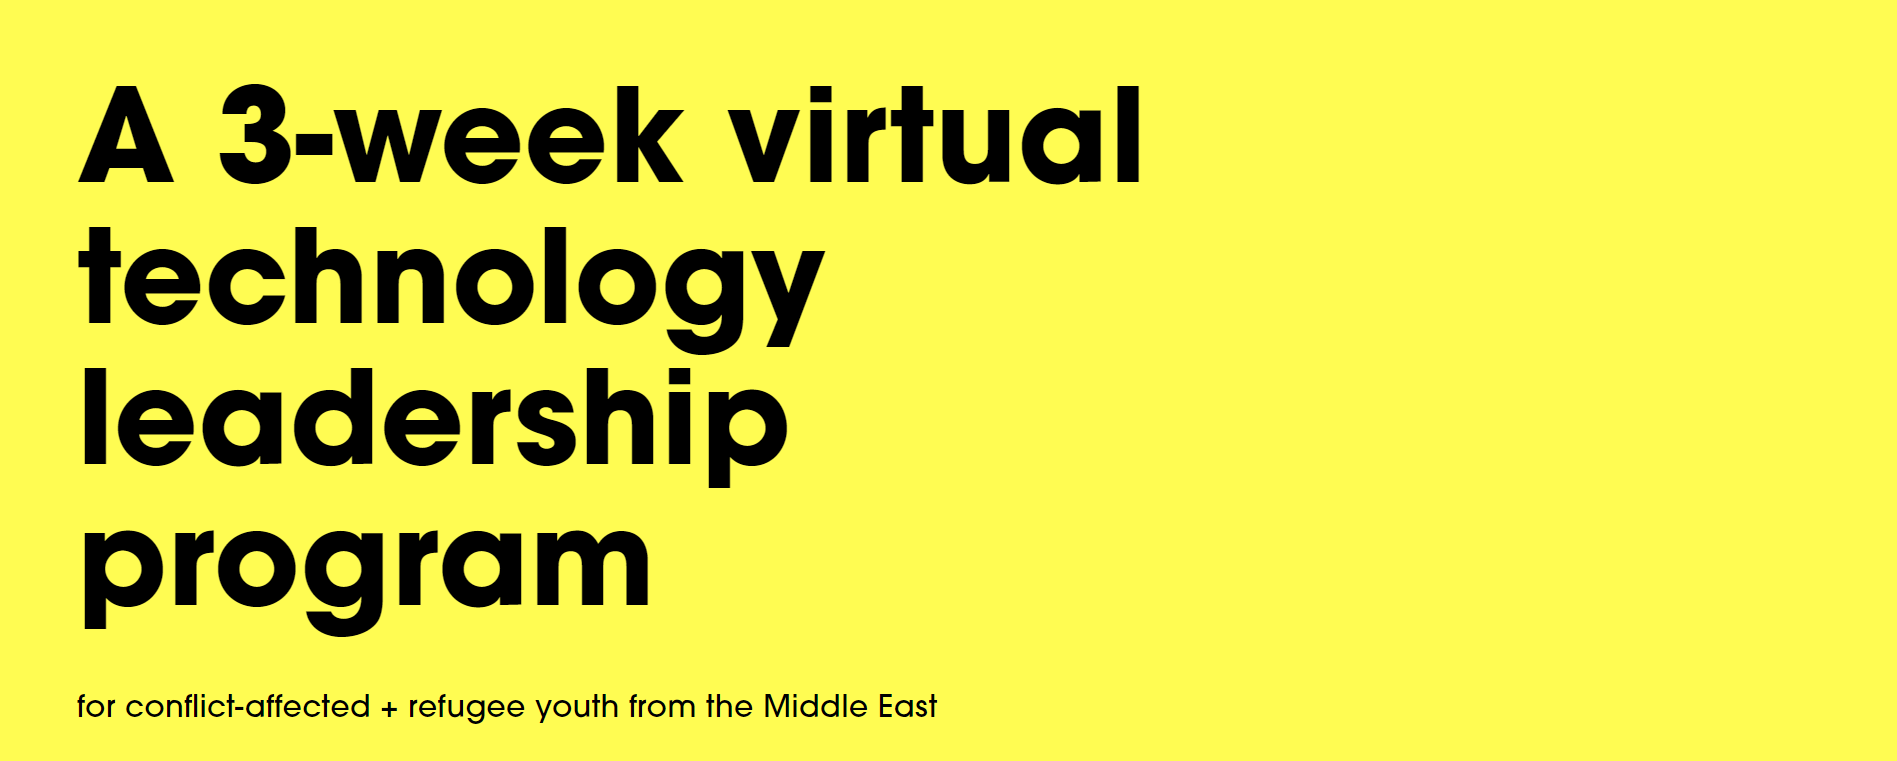 Young Tech Leaders of the Middle East: Virtual Tech Leadership Program Launches with 24 Youth